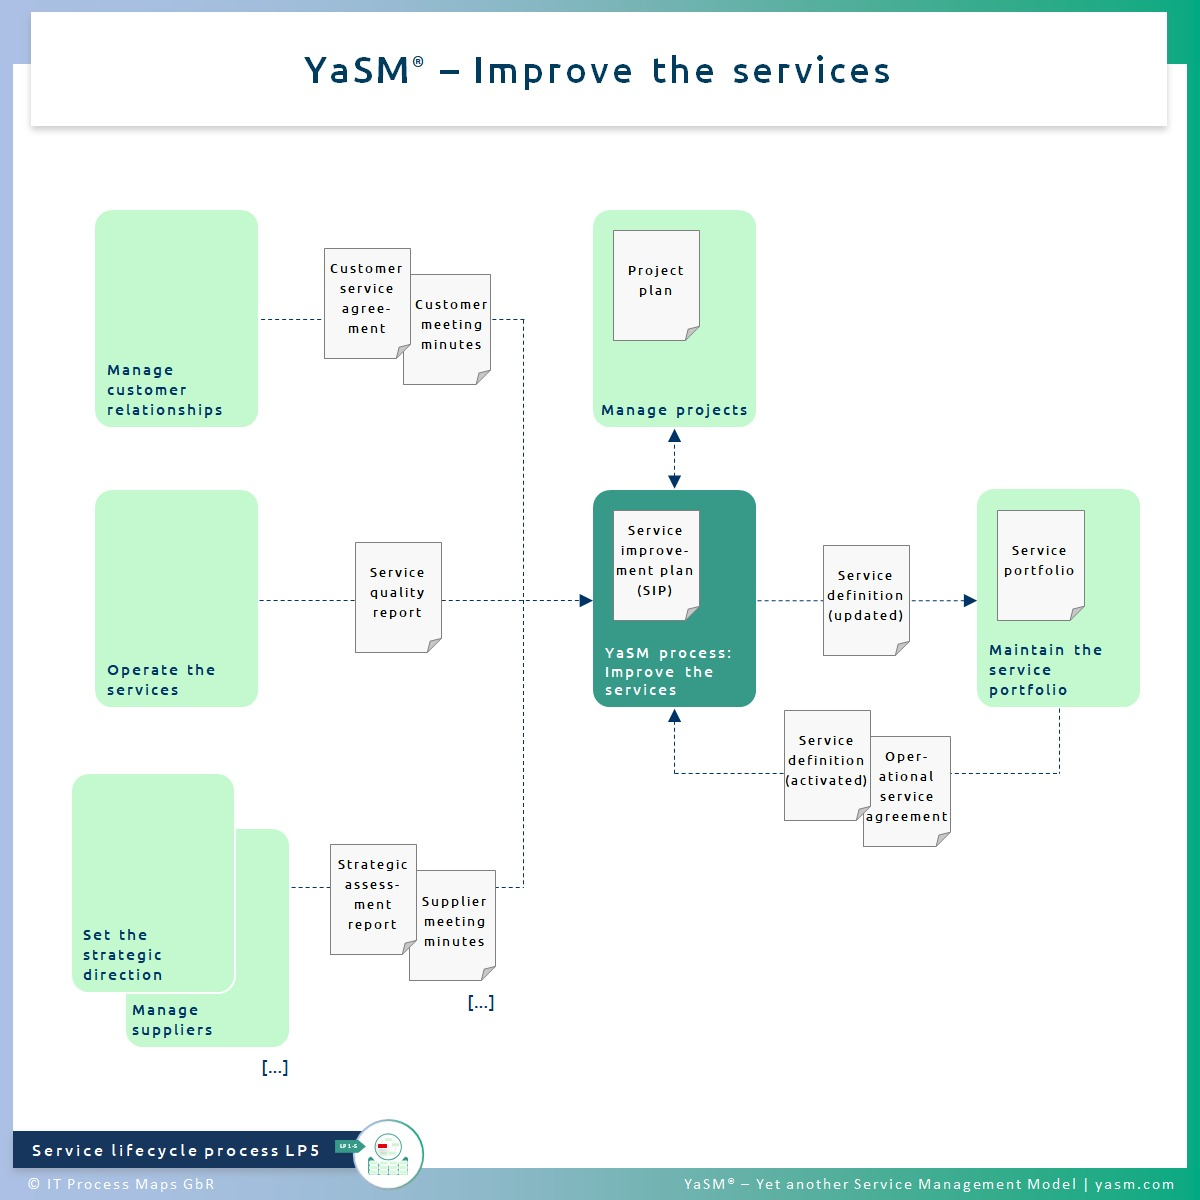 Fig. 1: Improve the services. - YaSM continual service improvement process LP5. - Related with: Practice of ITIL 4 continual improvement.